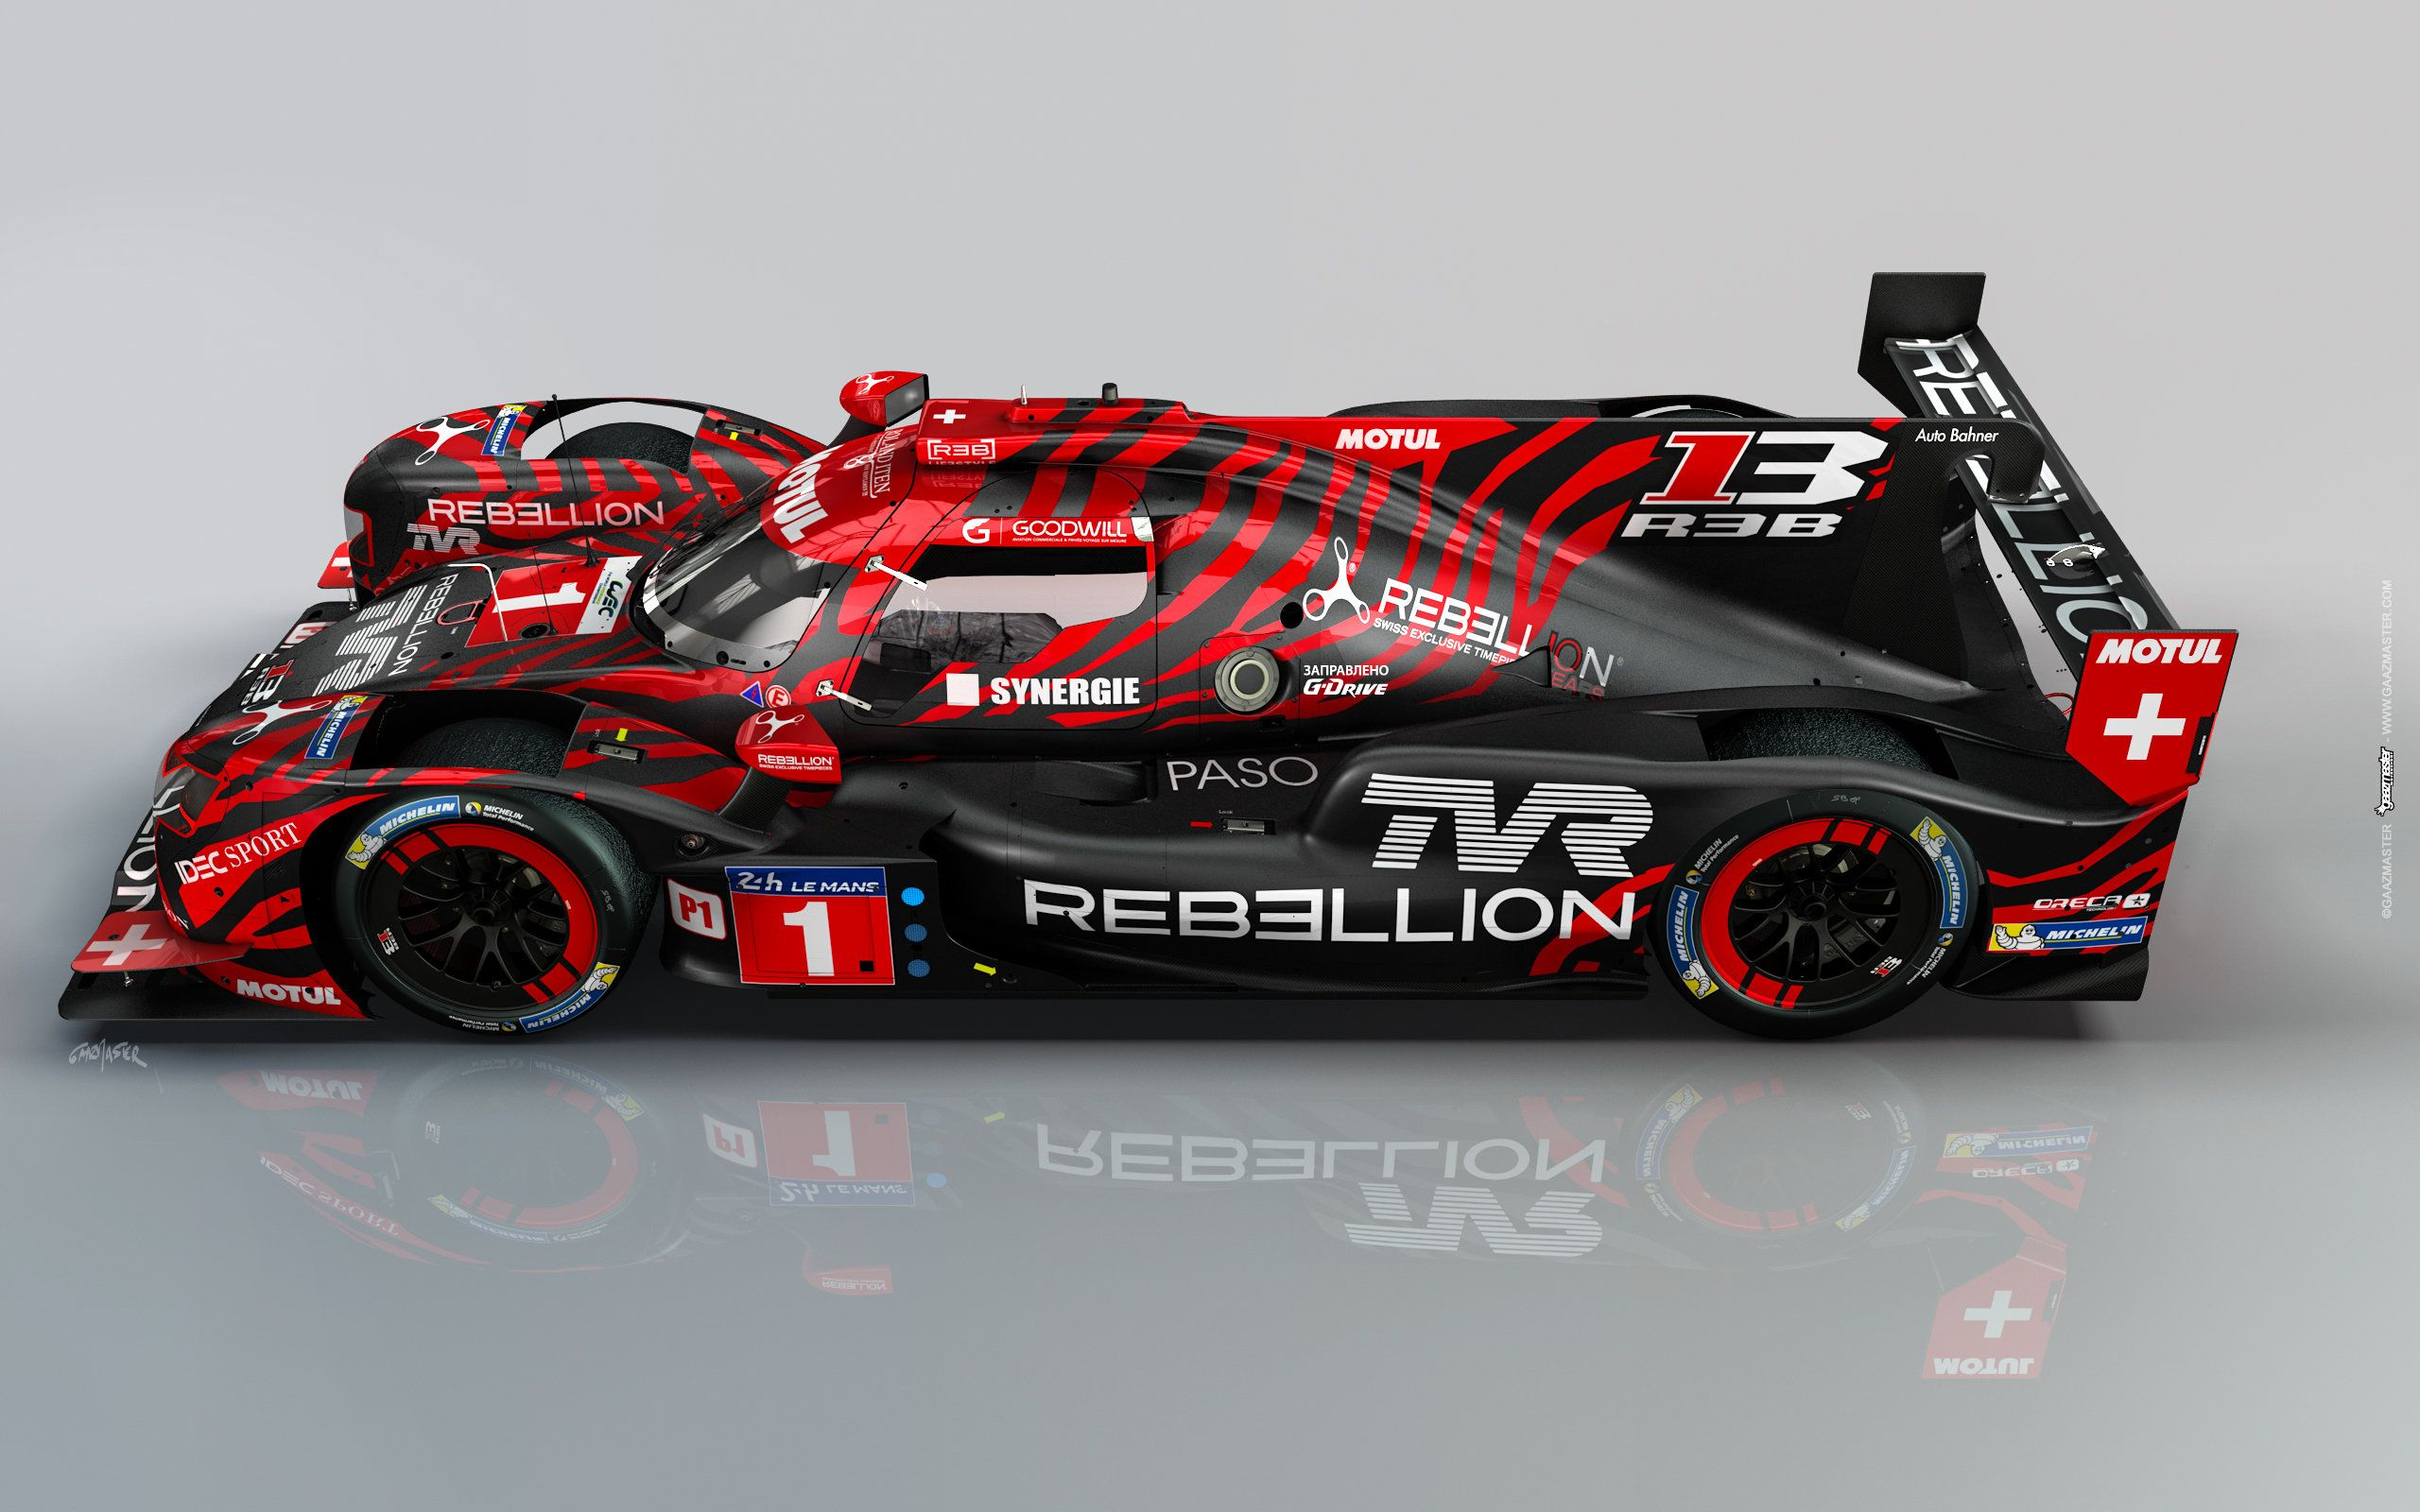 Tvr Joins Rebellion Racing Endurance Info English Spoken Racing Motorsport Sport Cars